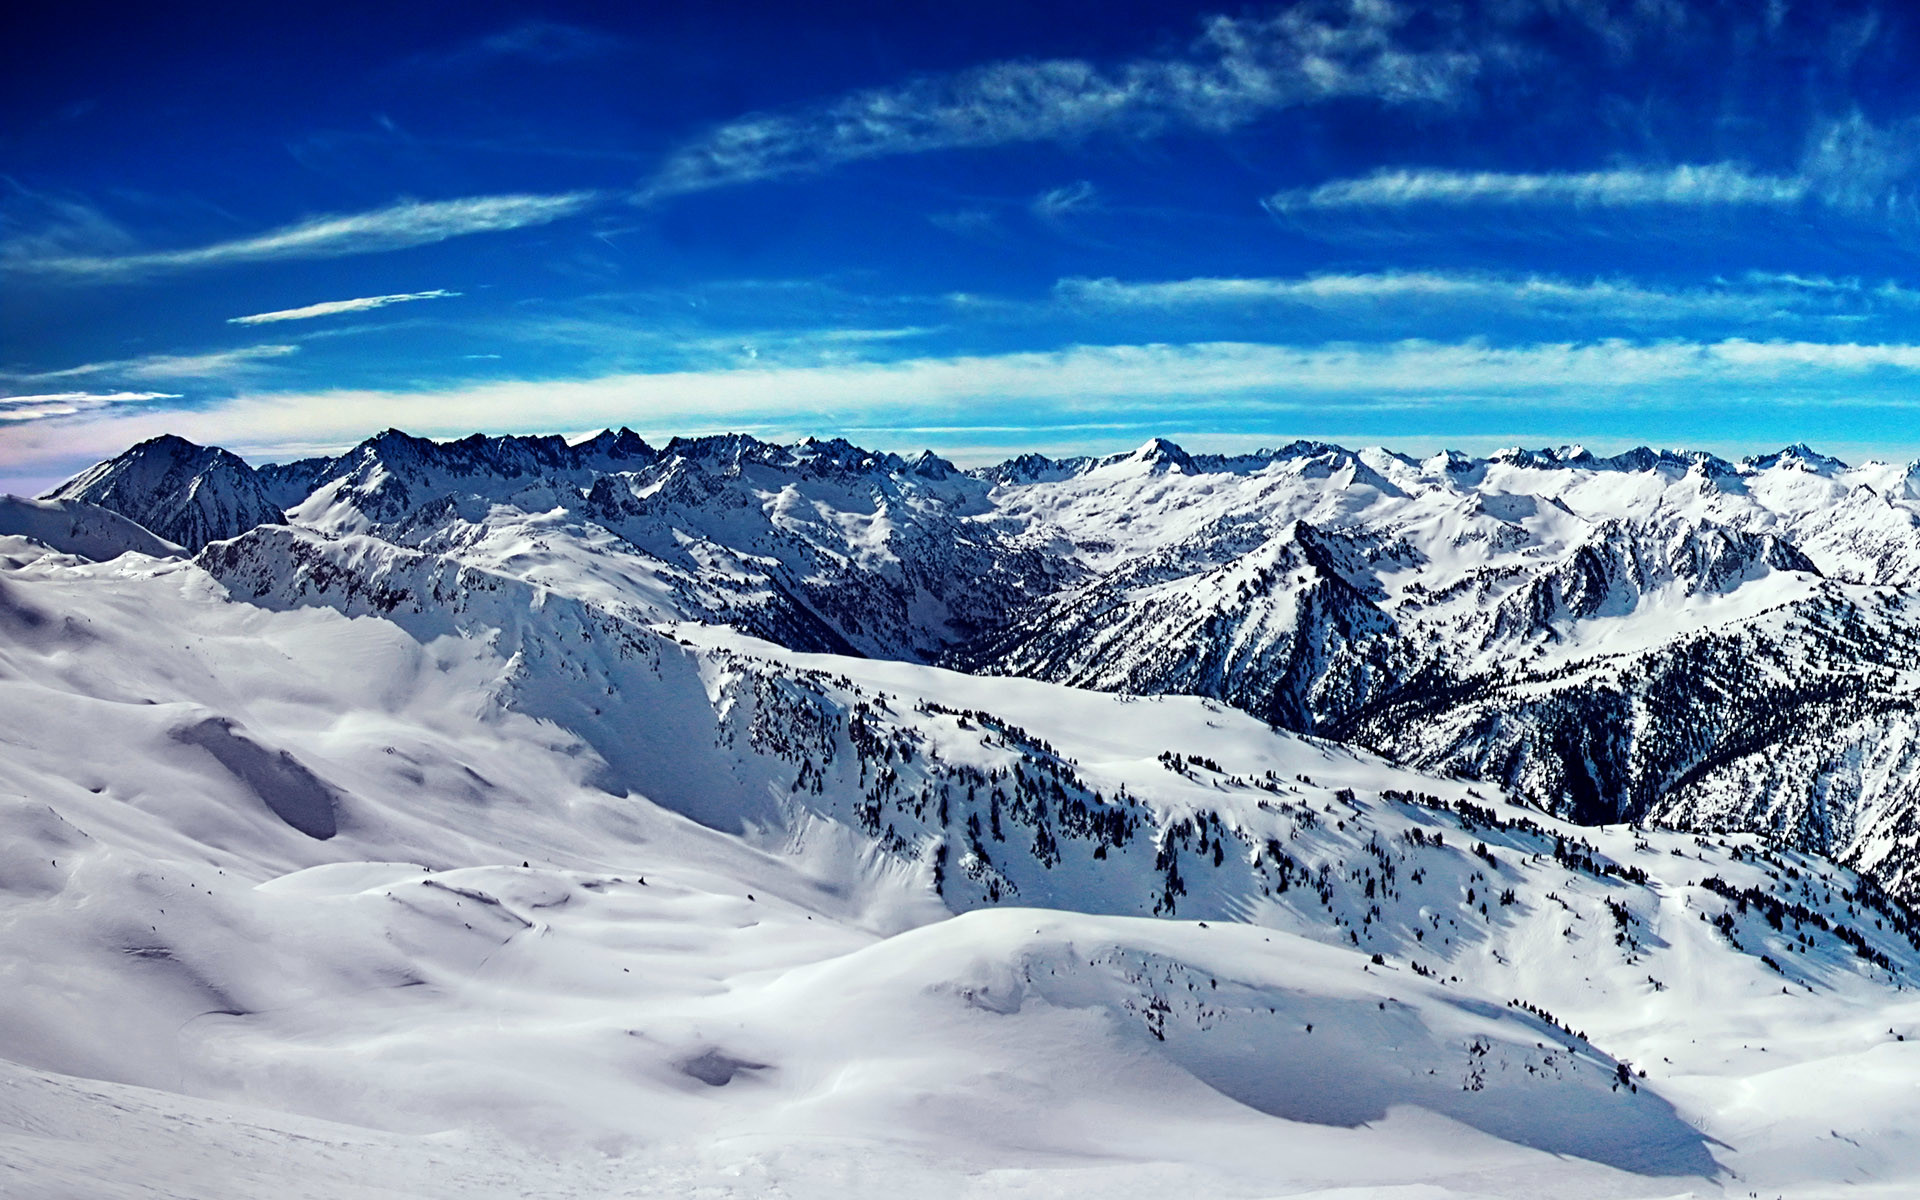 Res: 1920x1200, Ice Mountains Blue Sky Ice Mountains Blue Sky Wallpapers | HD Wallpapers